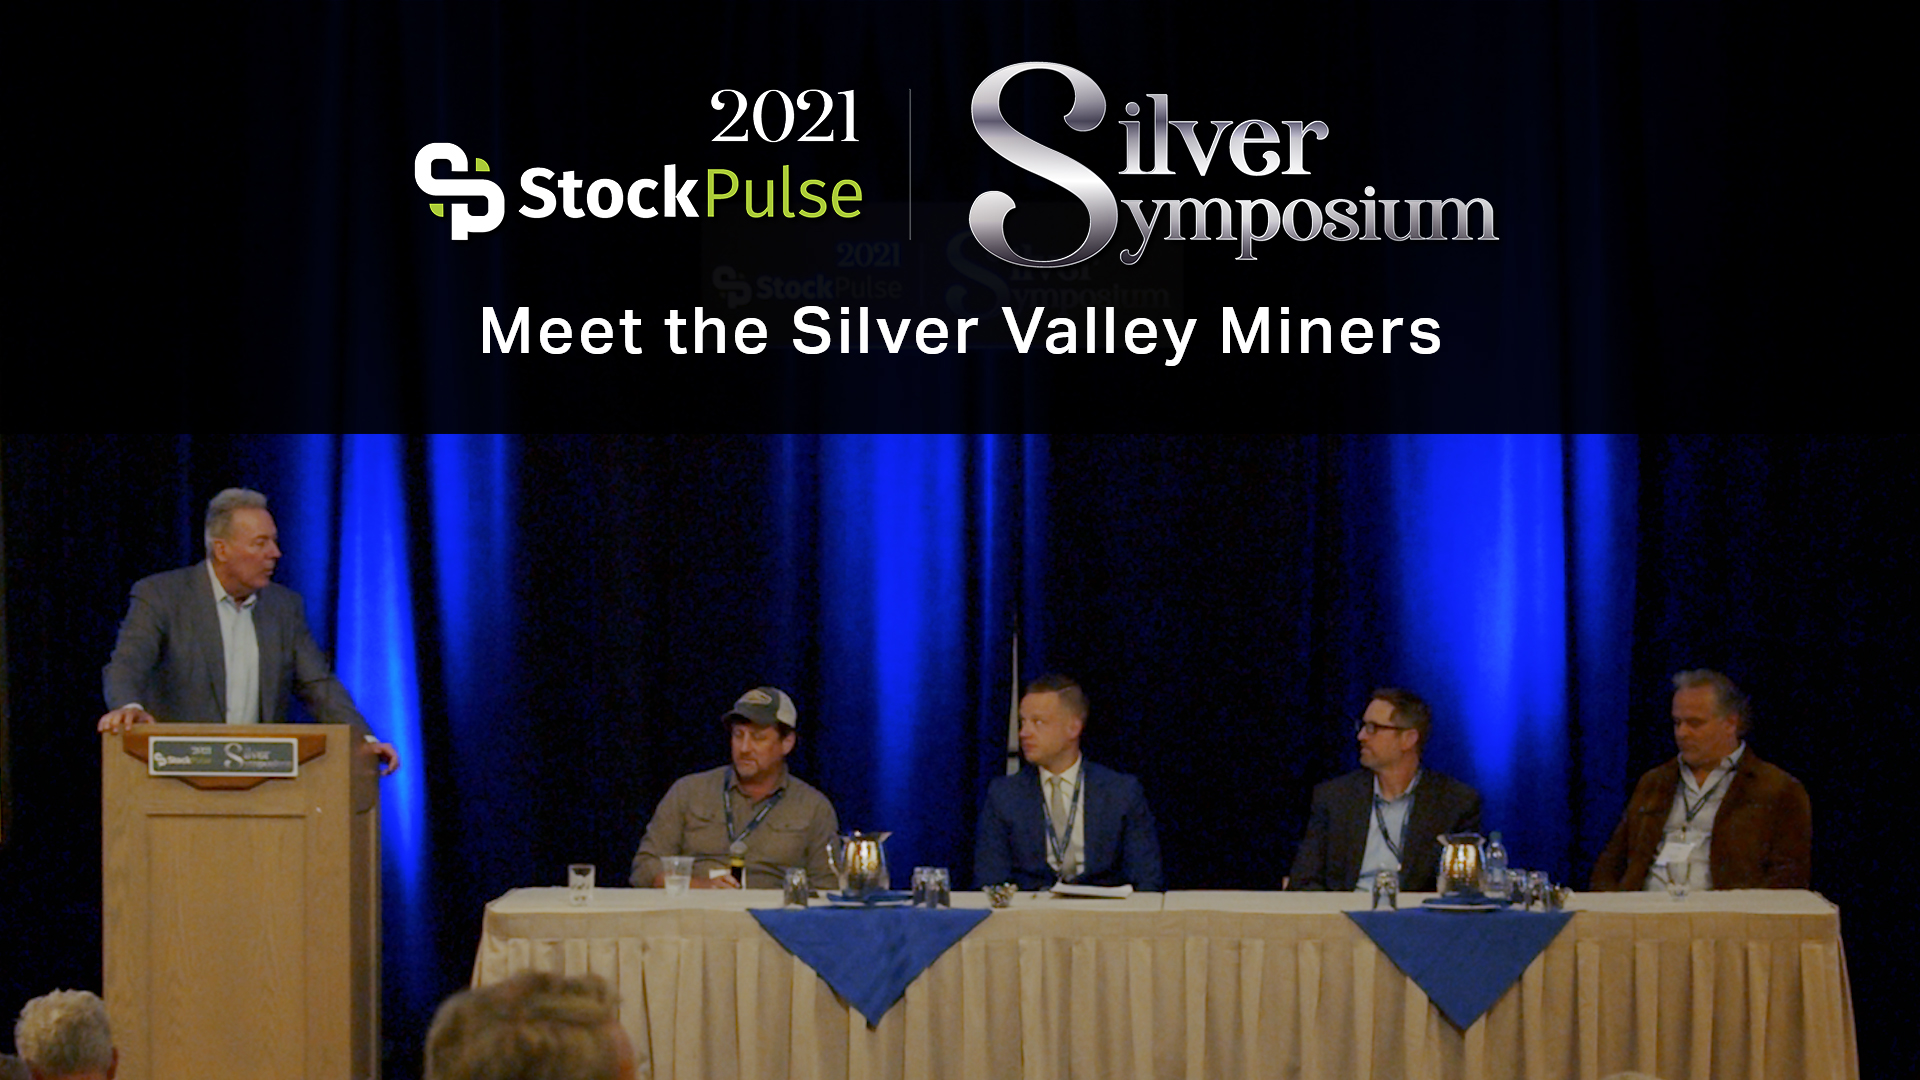 Panel: Meet the Silver Valley Miners with David Morgan